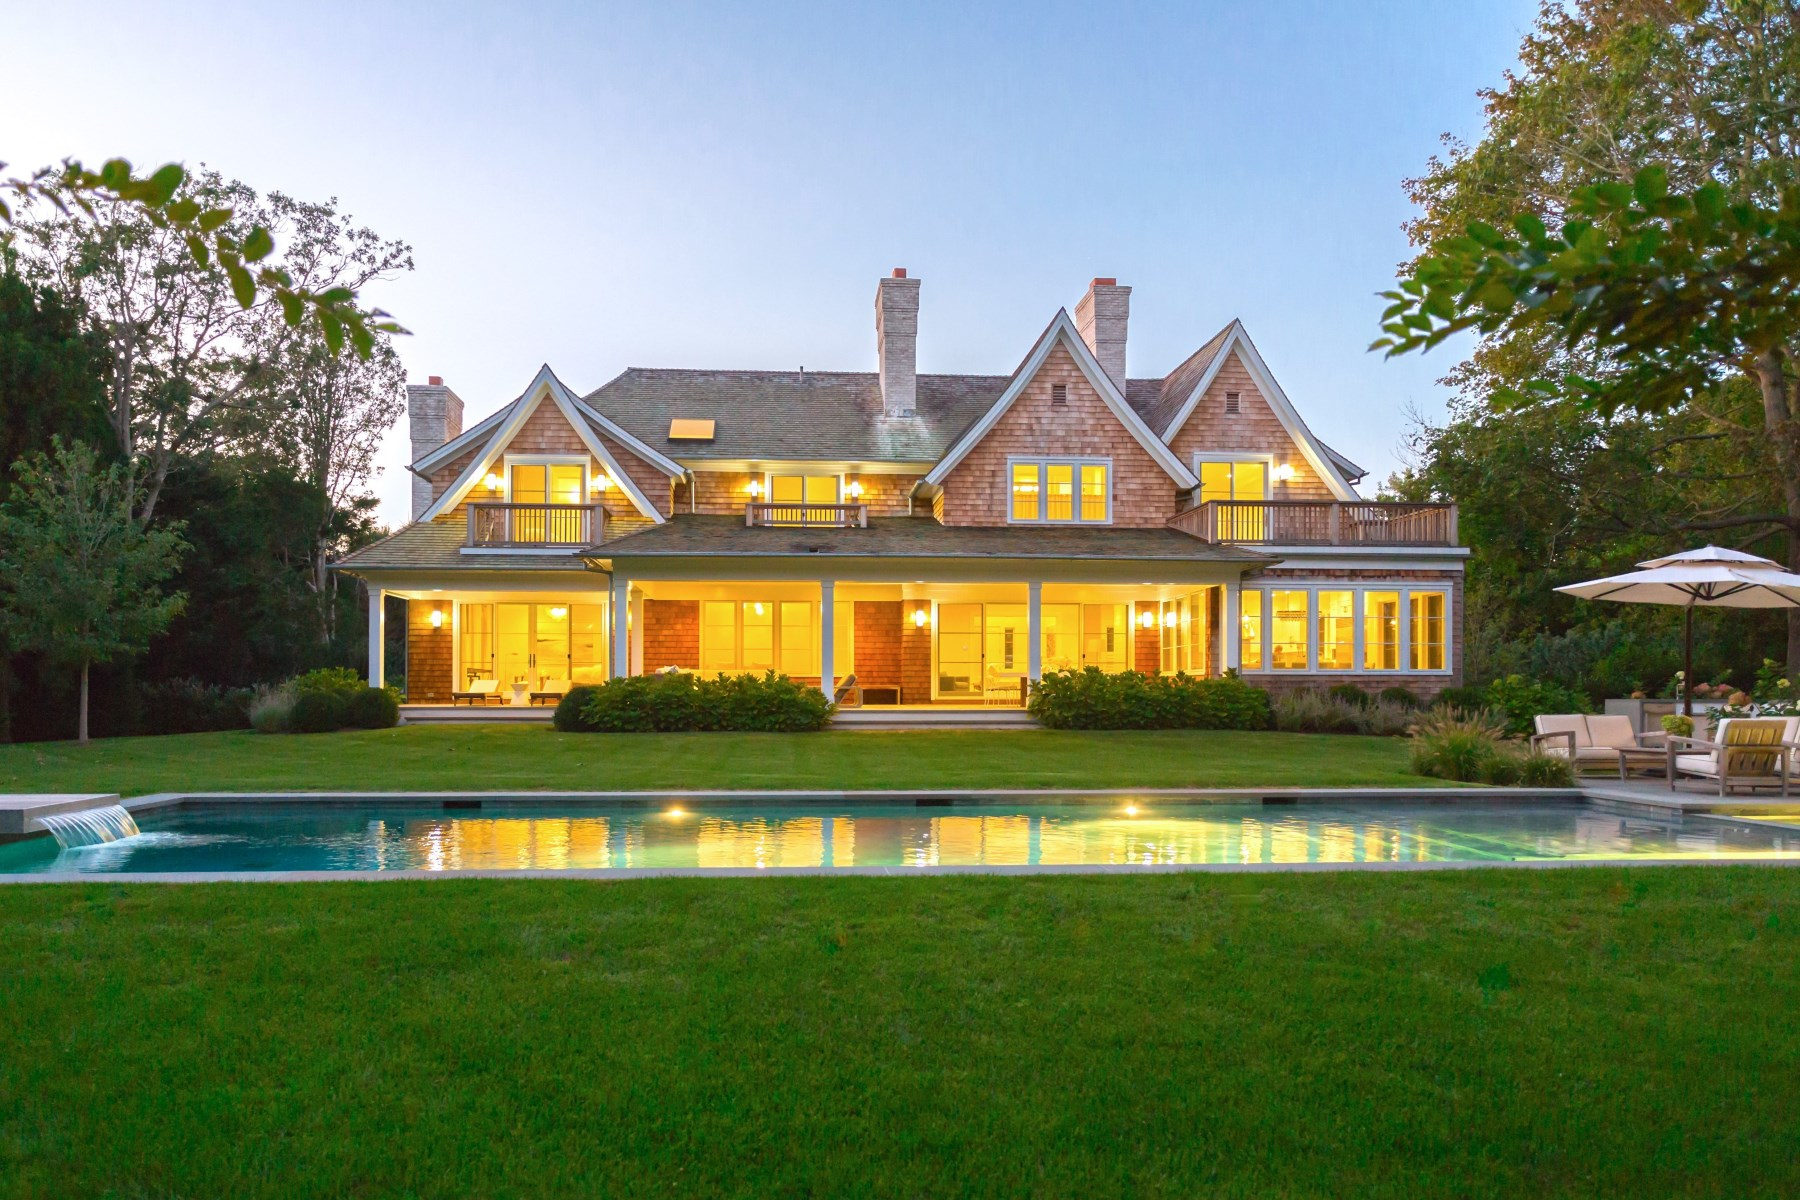 Single Family Home for Sale at Georgica Designer's Own New Construction 200 Georgica Road, East Hampton, New York, 11937 United States